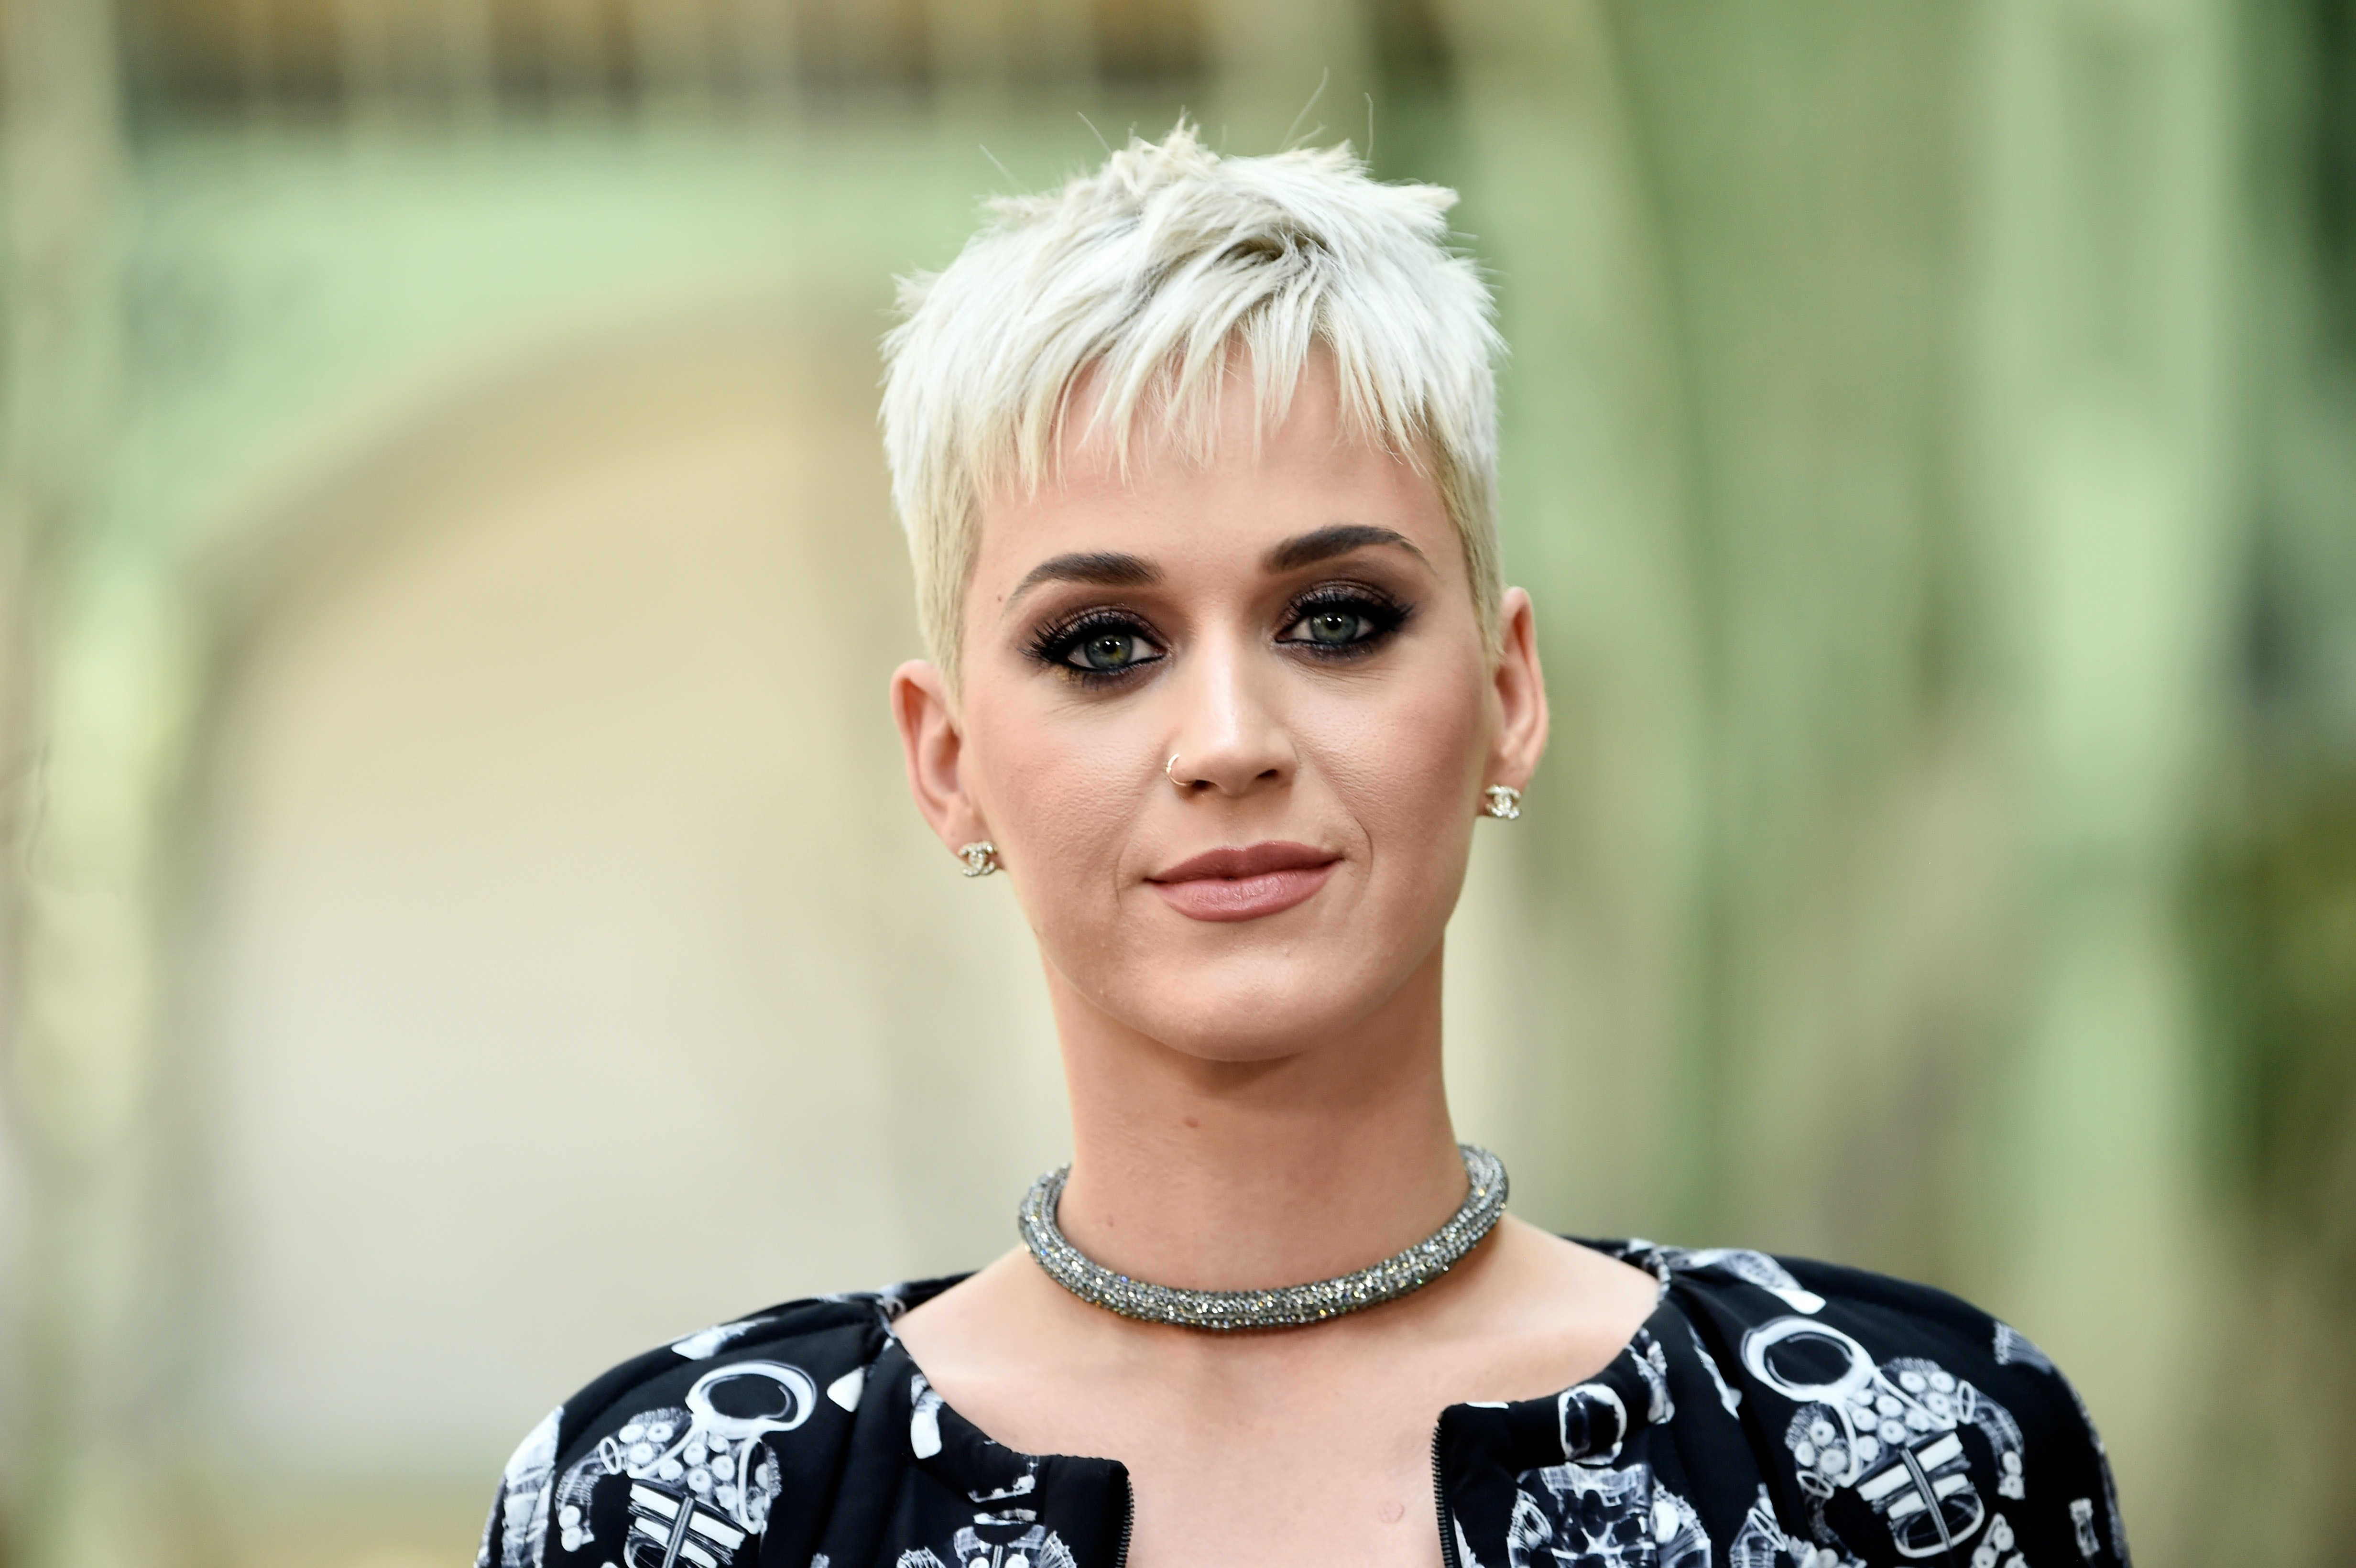 Here S The Real Reason Katy Perry Got That Pixie Cut According To The Artist Herself